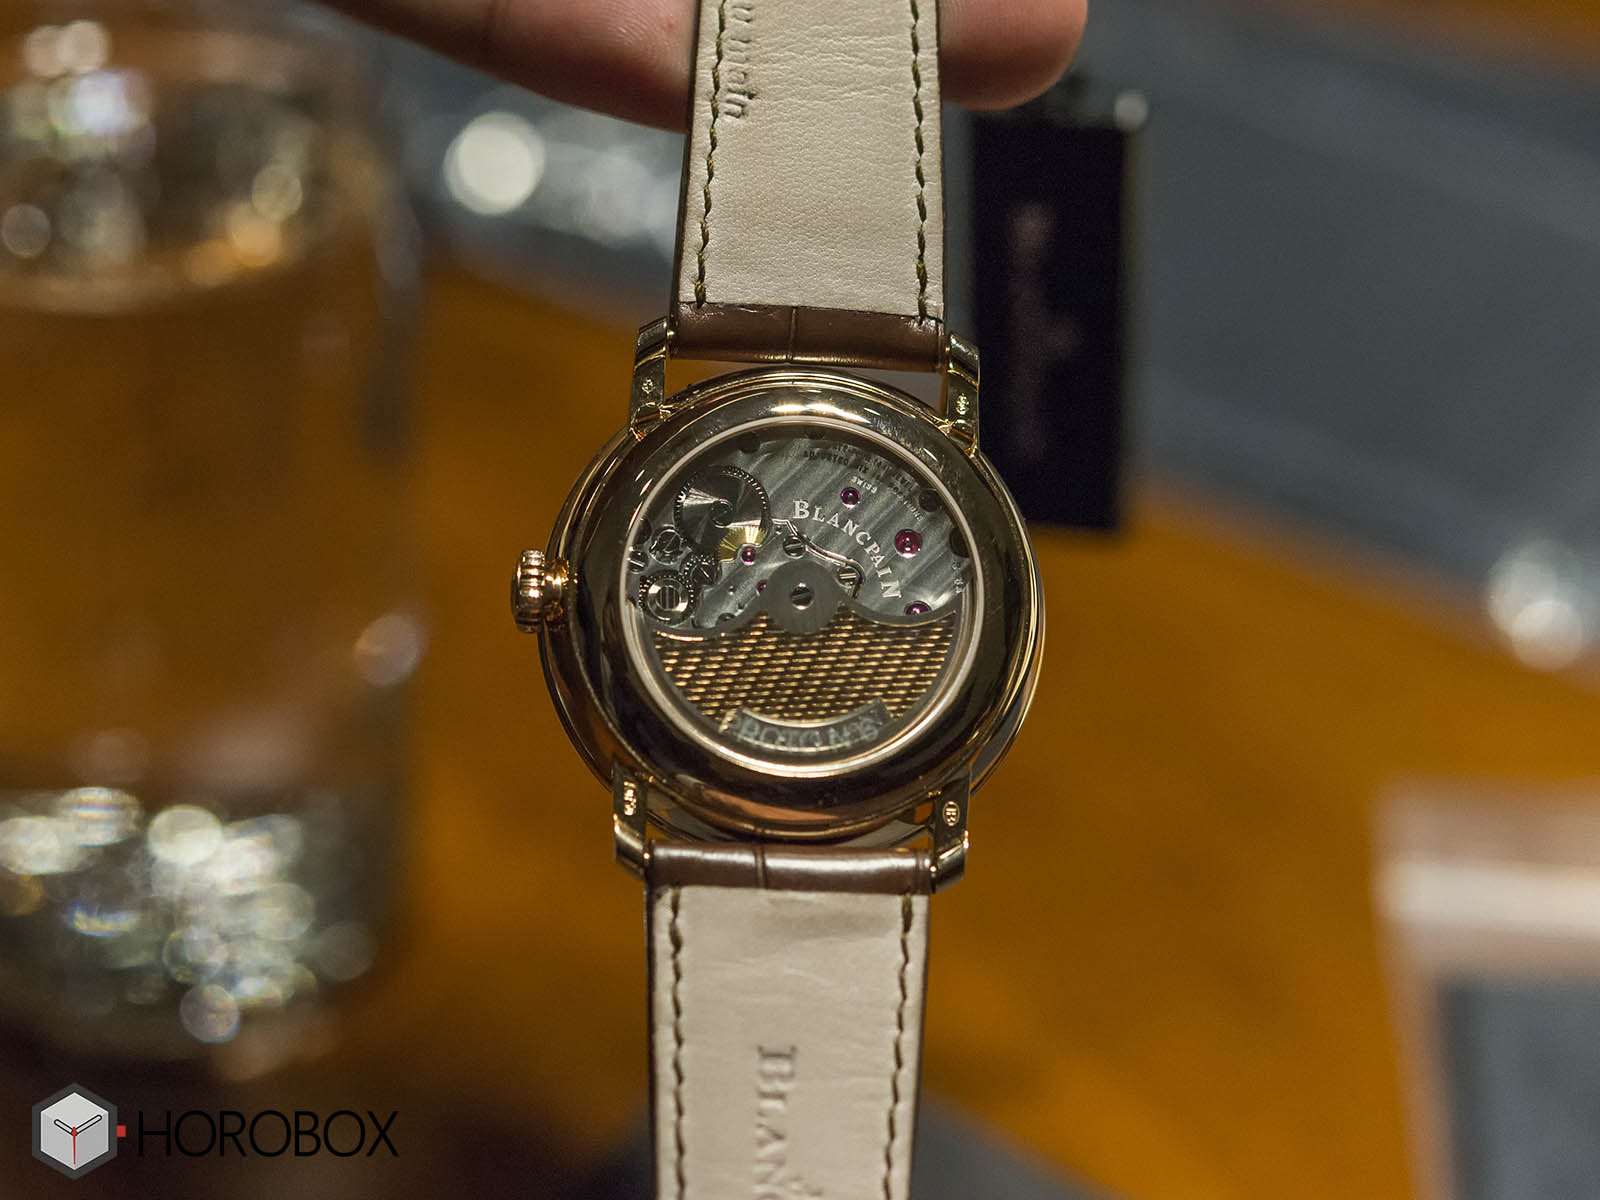 Blancpain-Villeret-Collection-6637-3631-55B-6.jpg